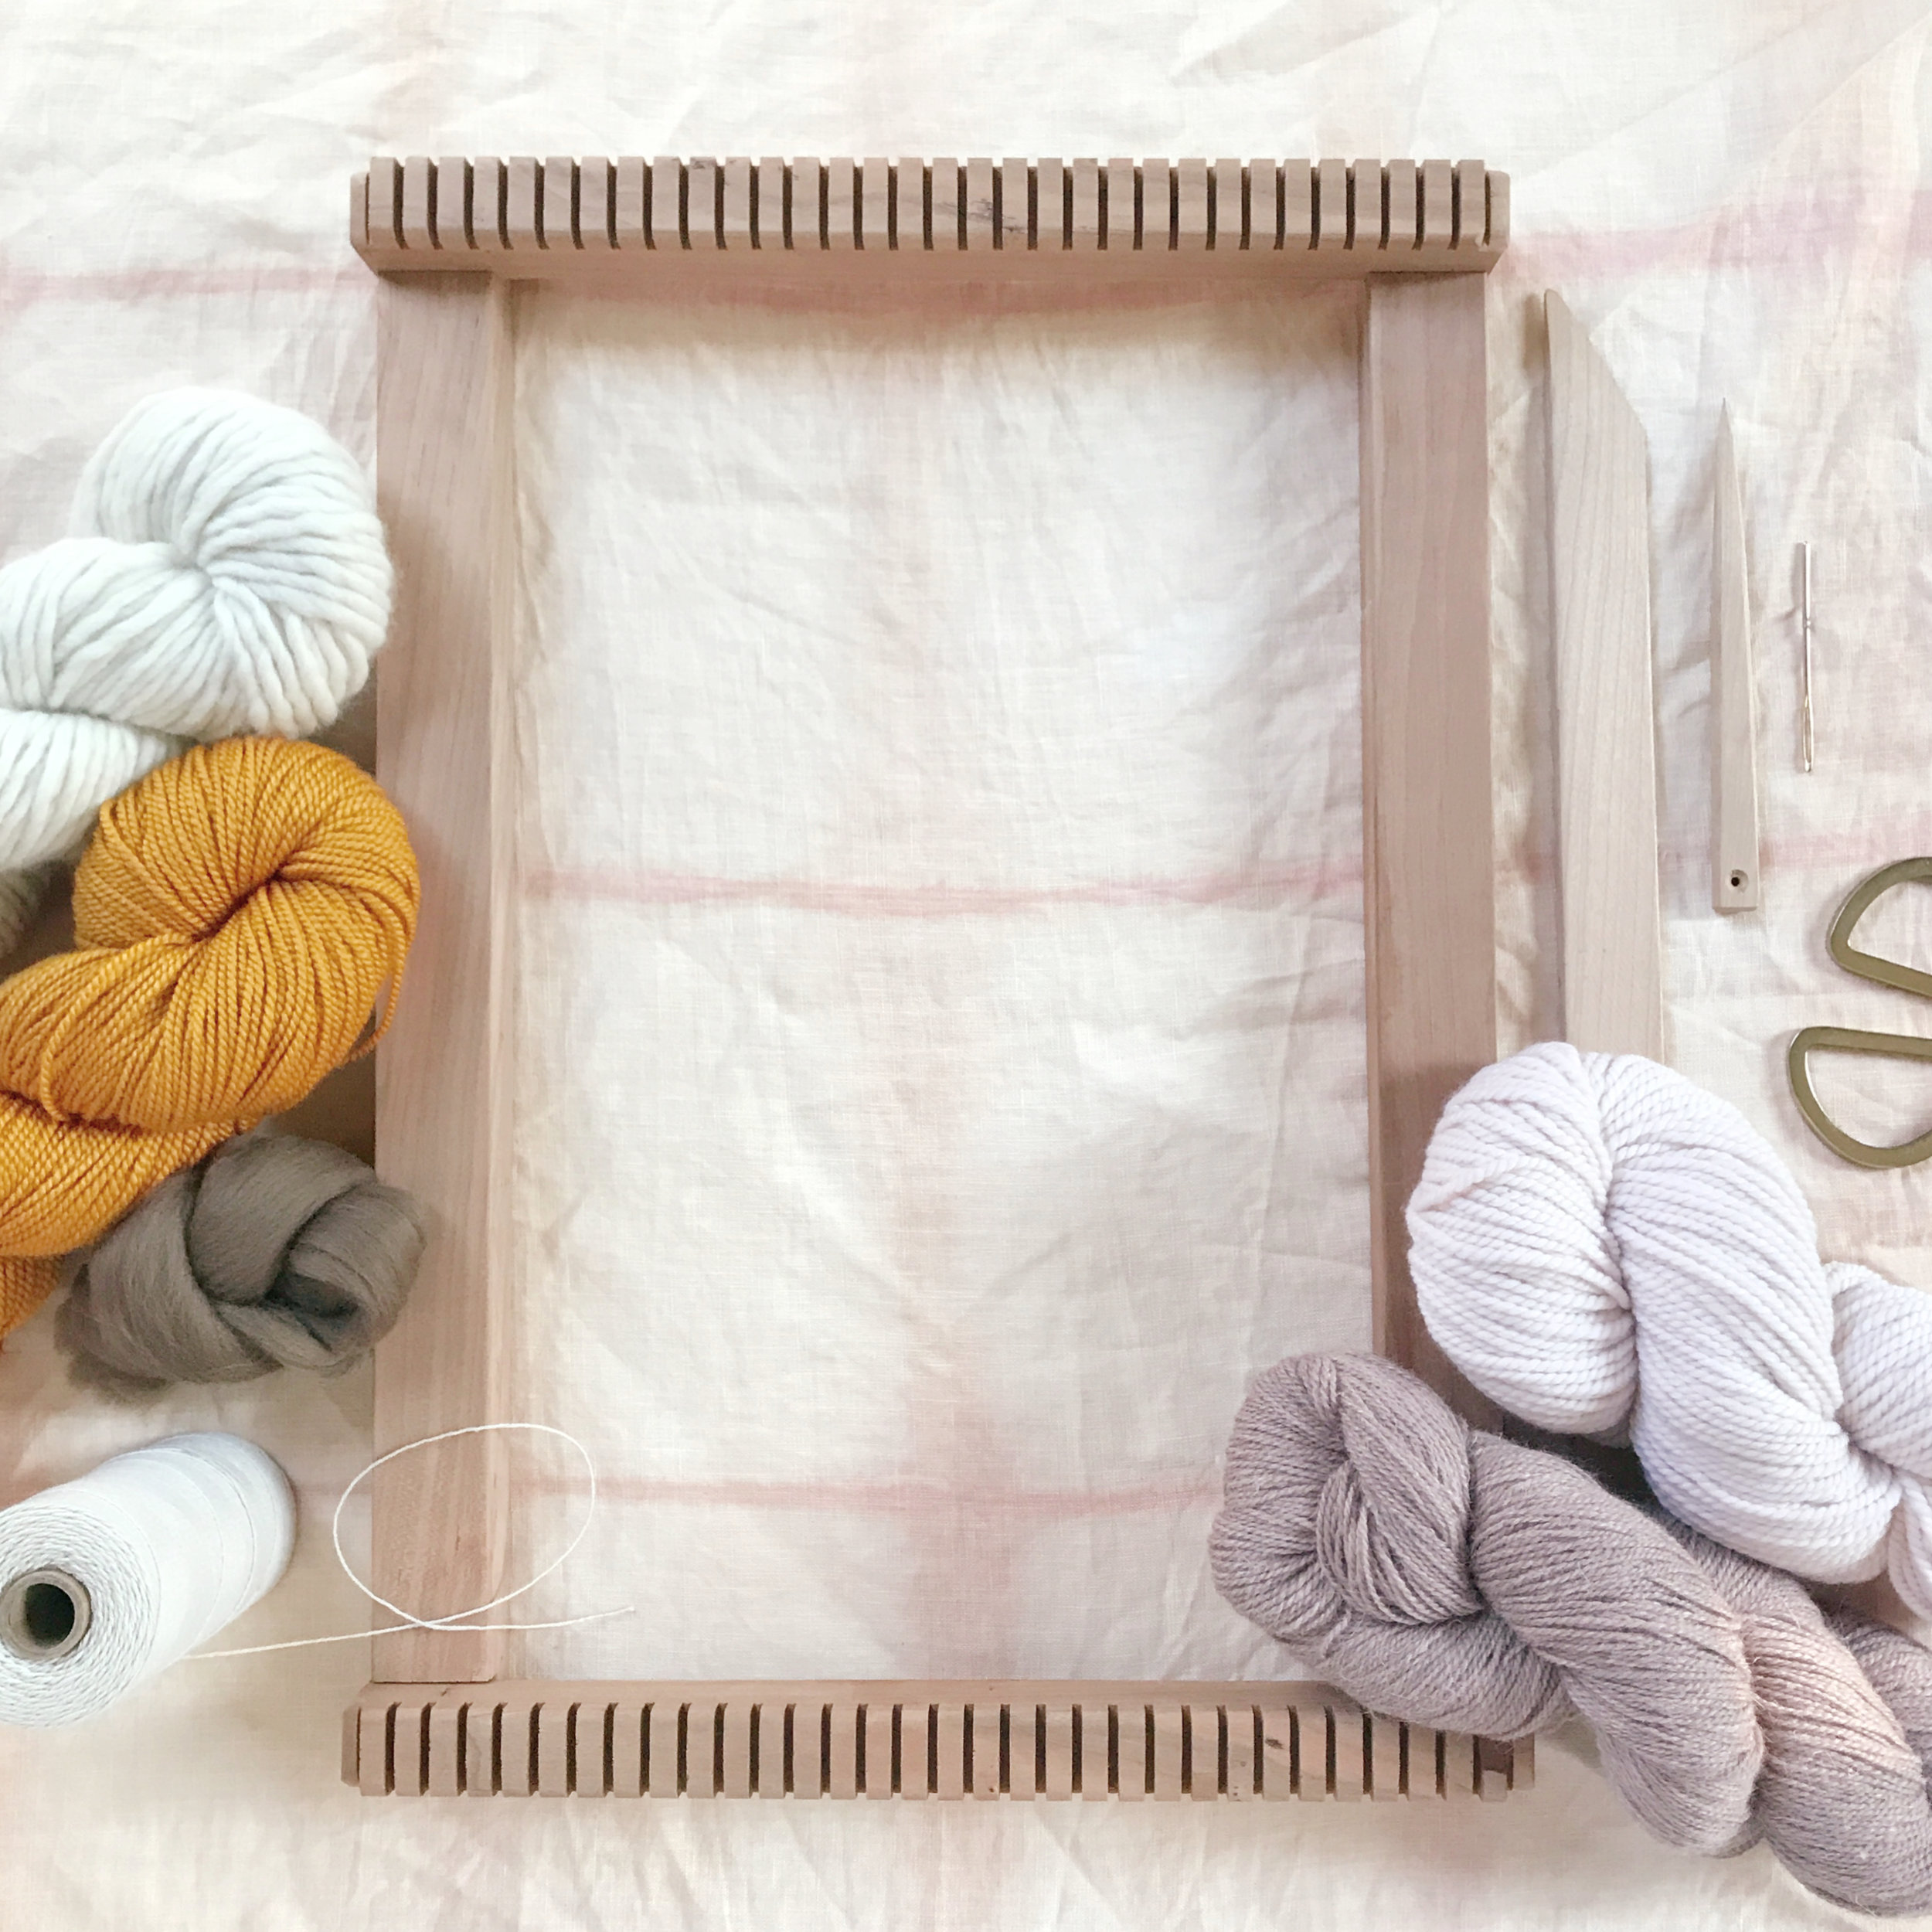 weaving tools and supplies